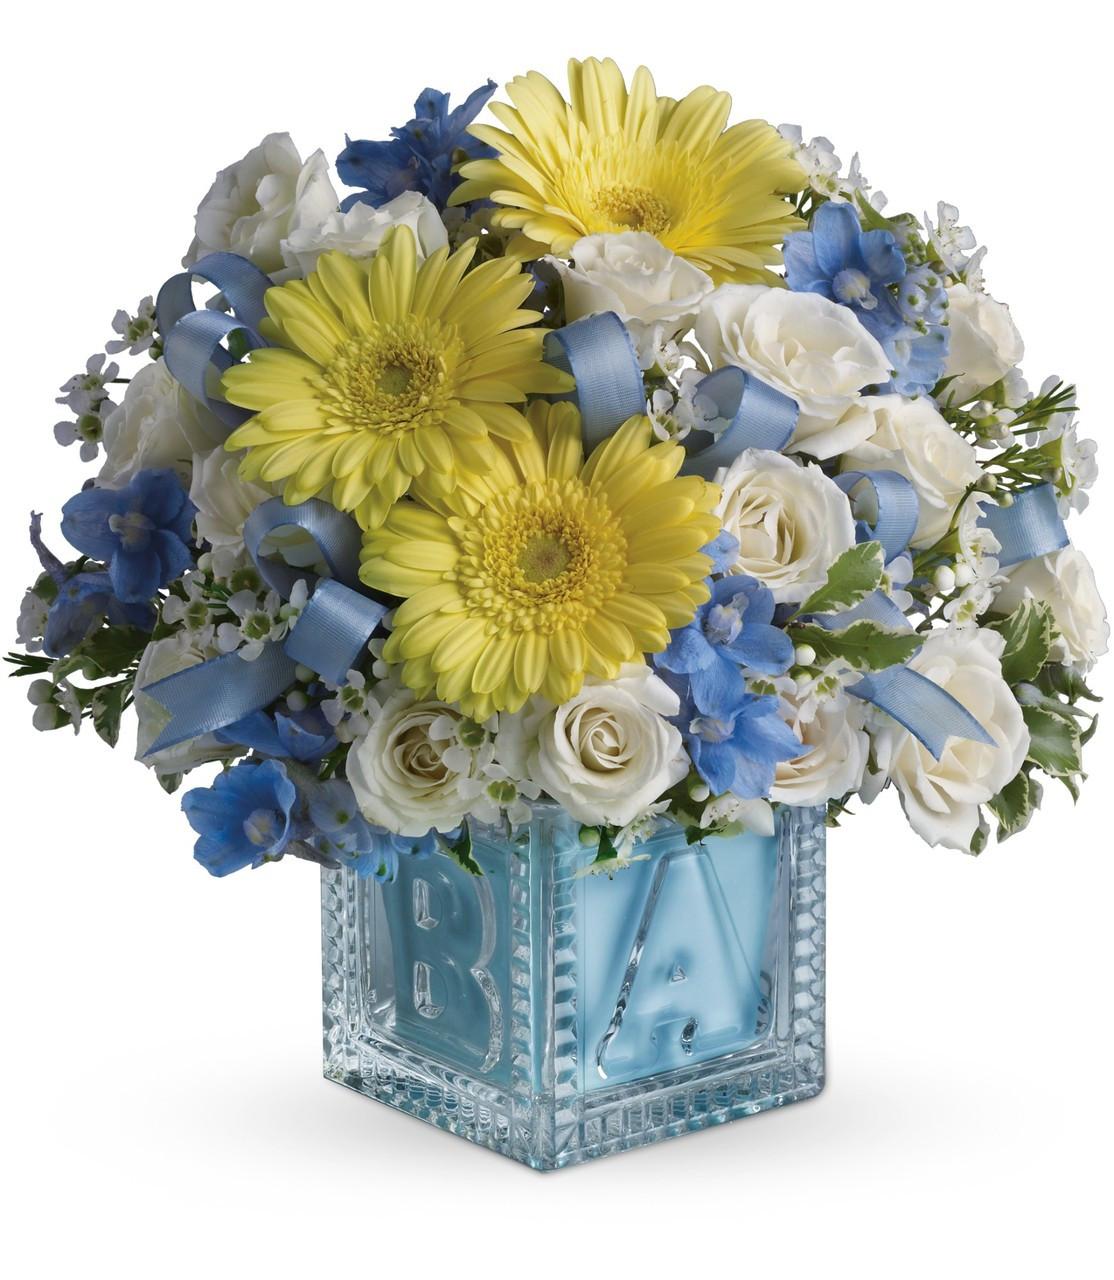 Send flowers online Same day delivery of New Baby Boy Flowers in Houston &a